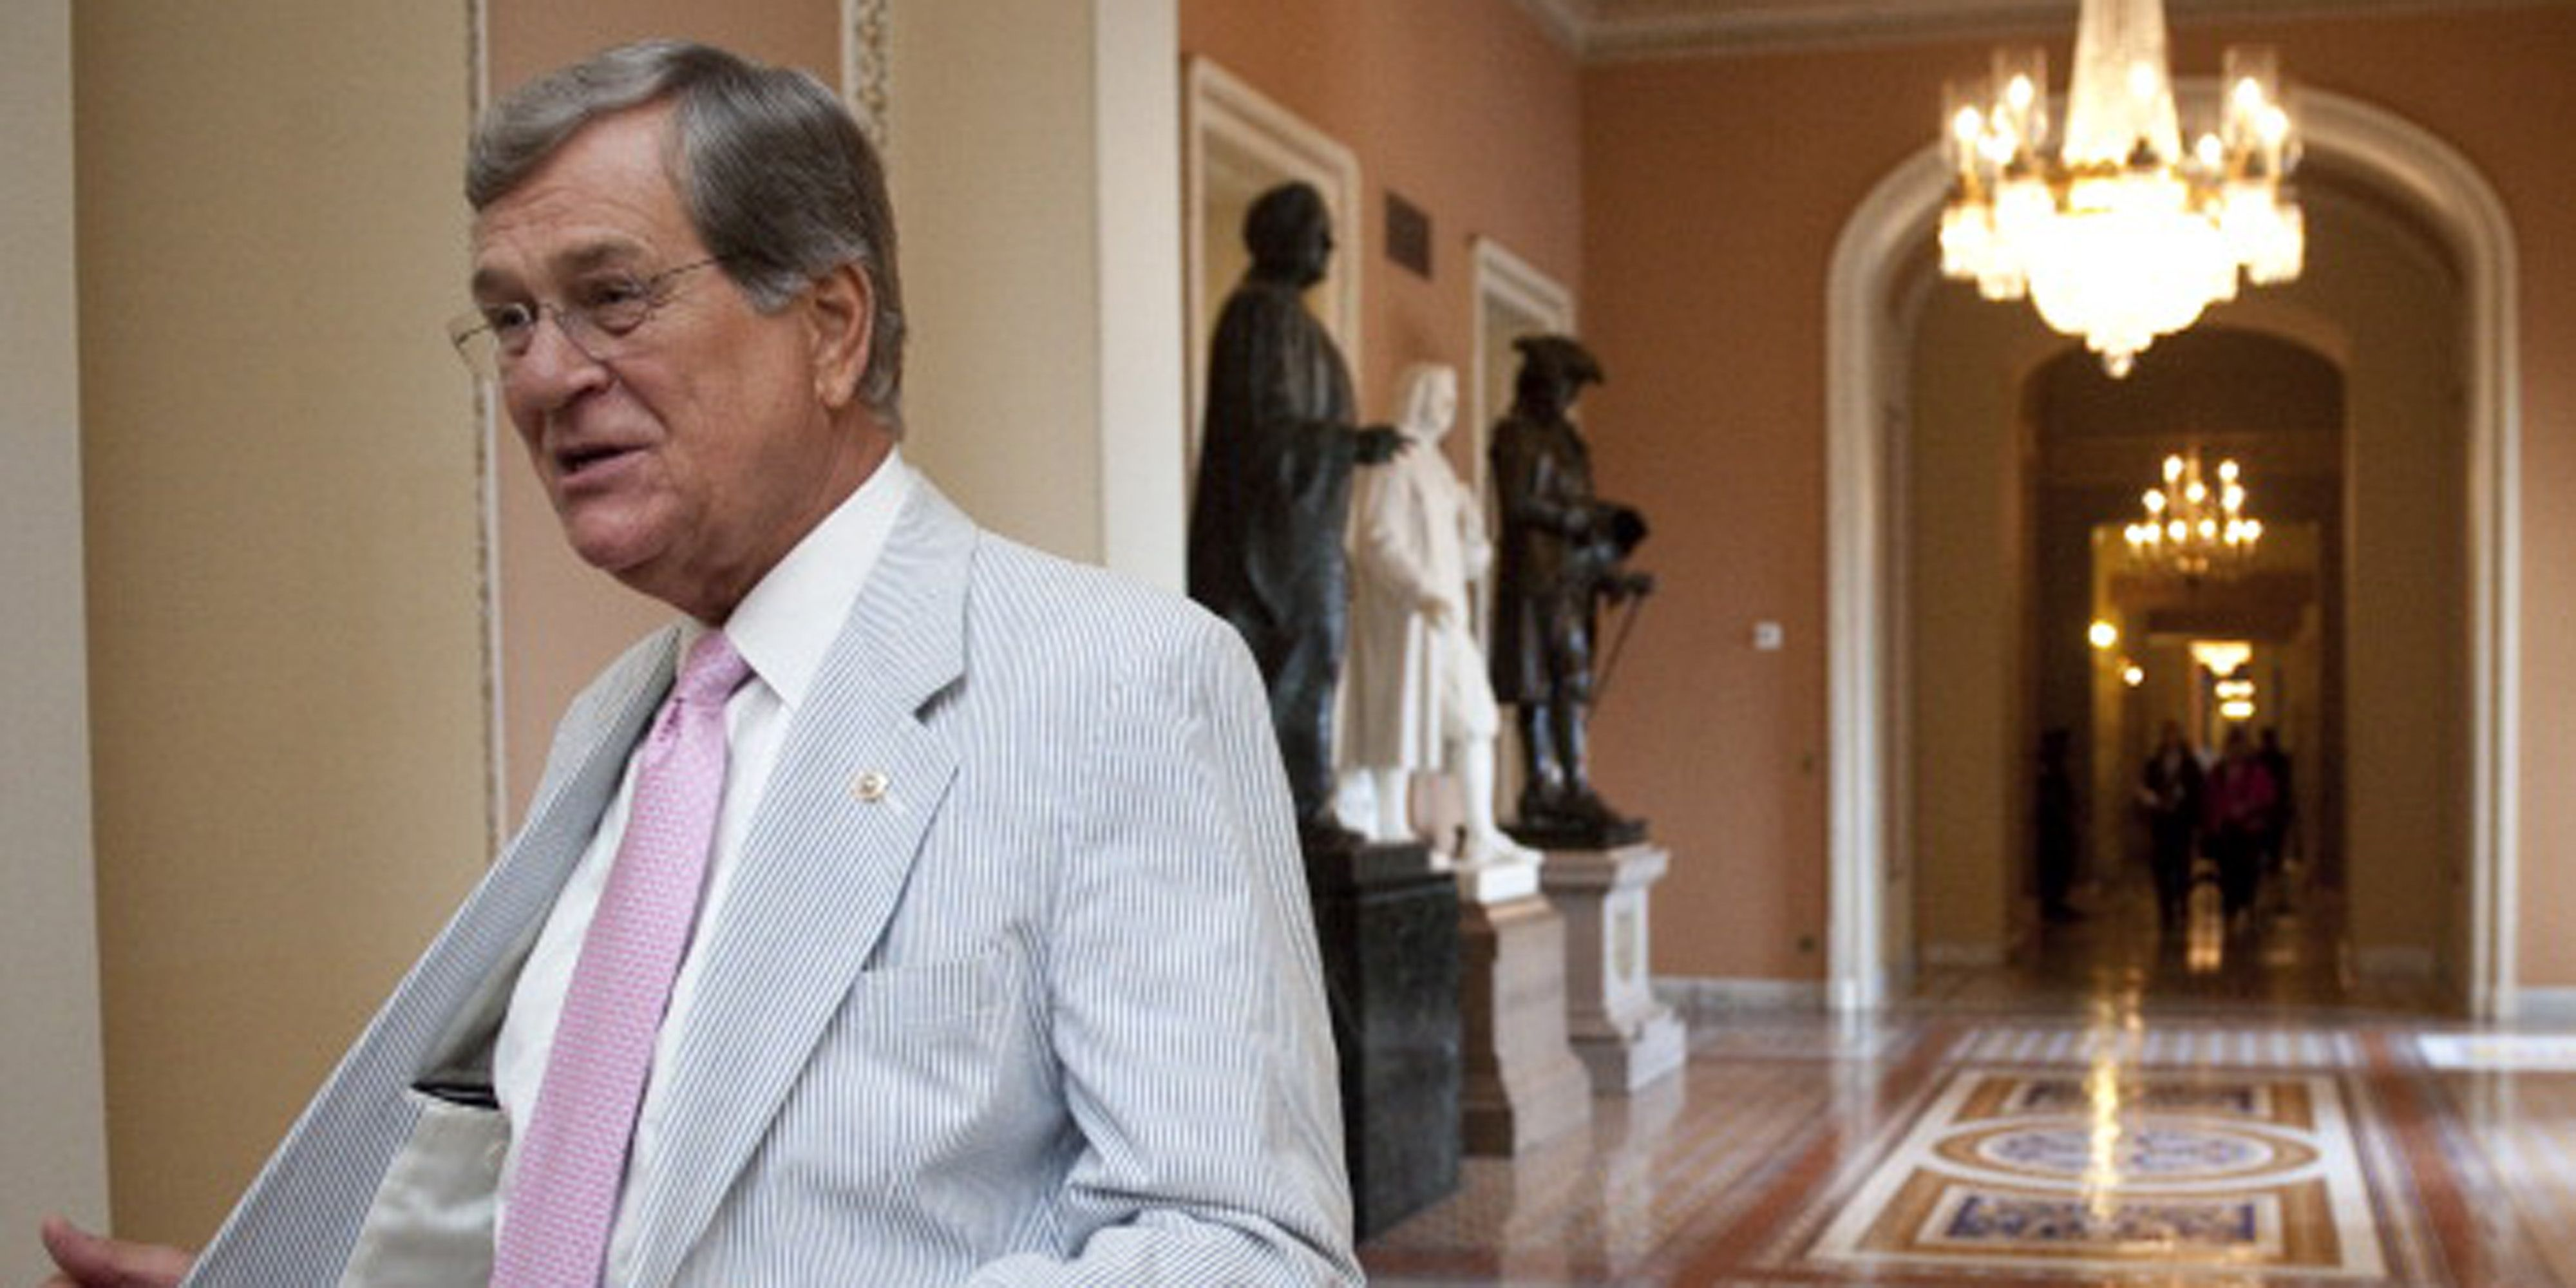 UNITED STATES – JUNE 23: Former Sen. Trent Lott, R-Miss., shows off his seersucker suit in the Ohio Clock Corridor on Thursday, June 23, 2011. The third thursday of June is traditionally called Seersucker Thursday. (Photo By Bill Clark/Roll Call)